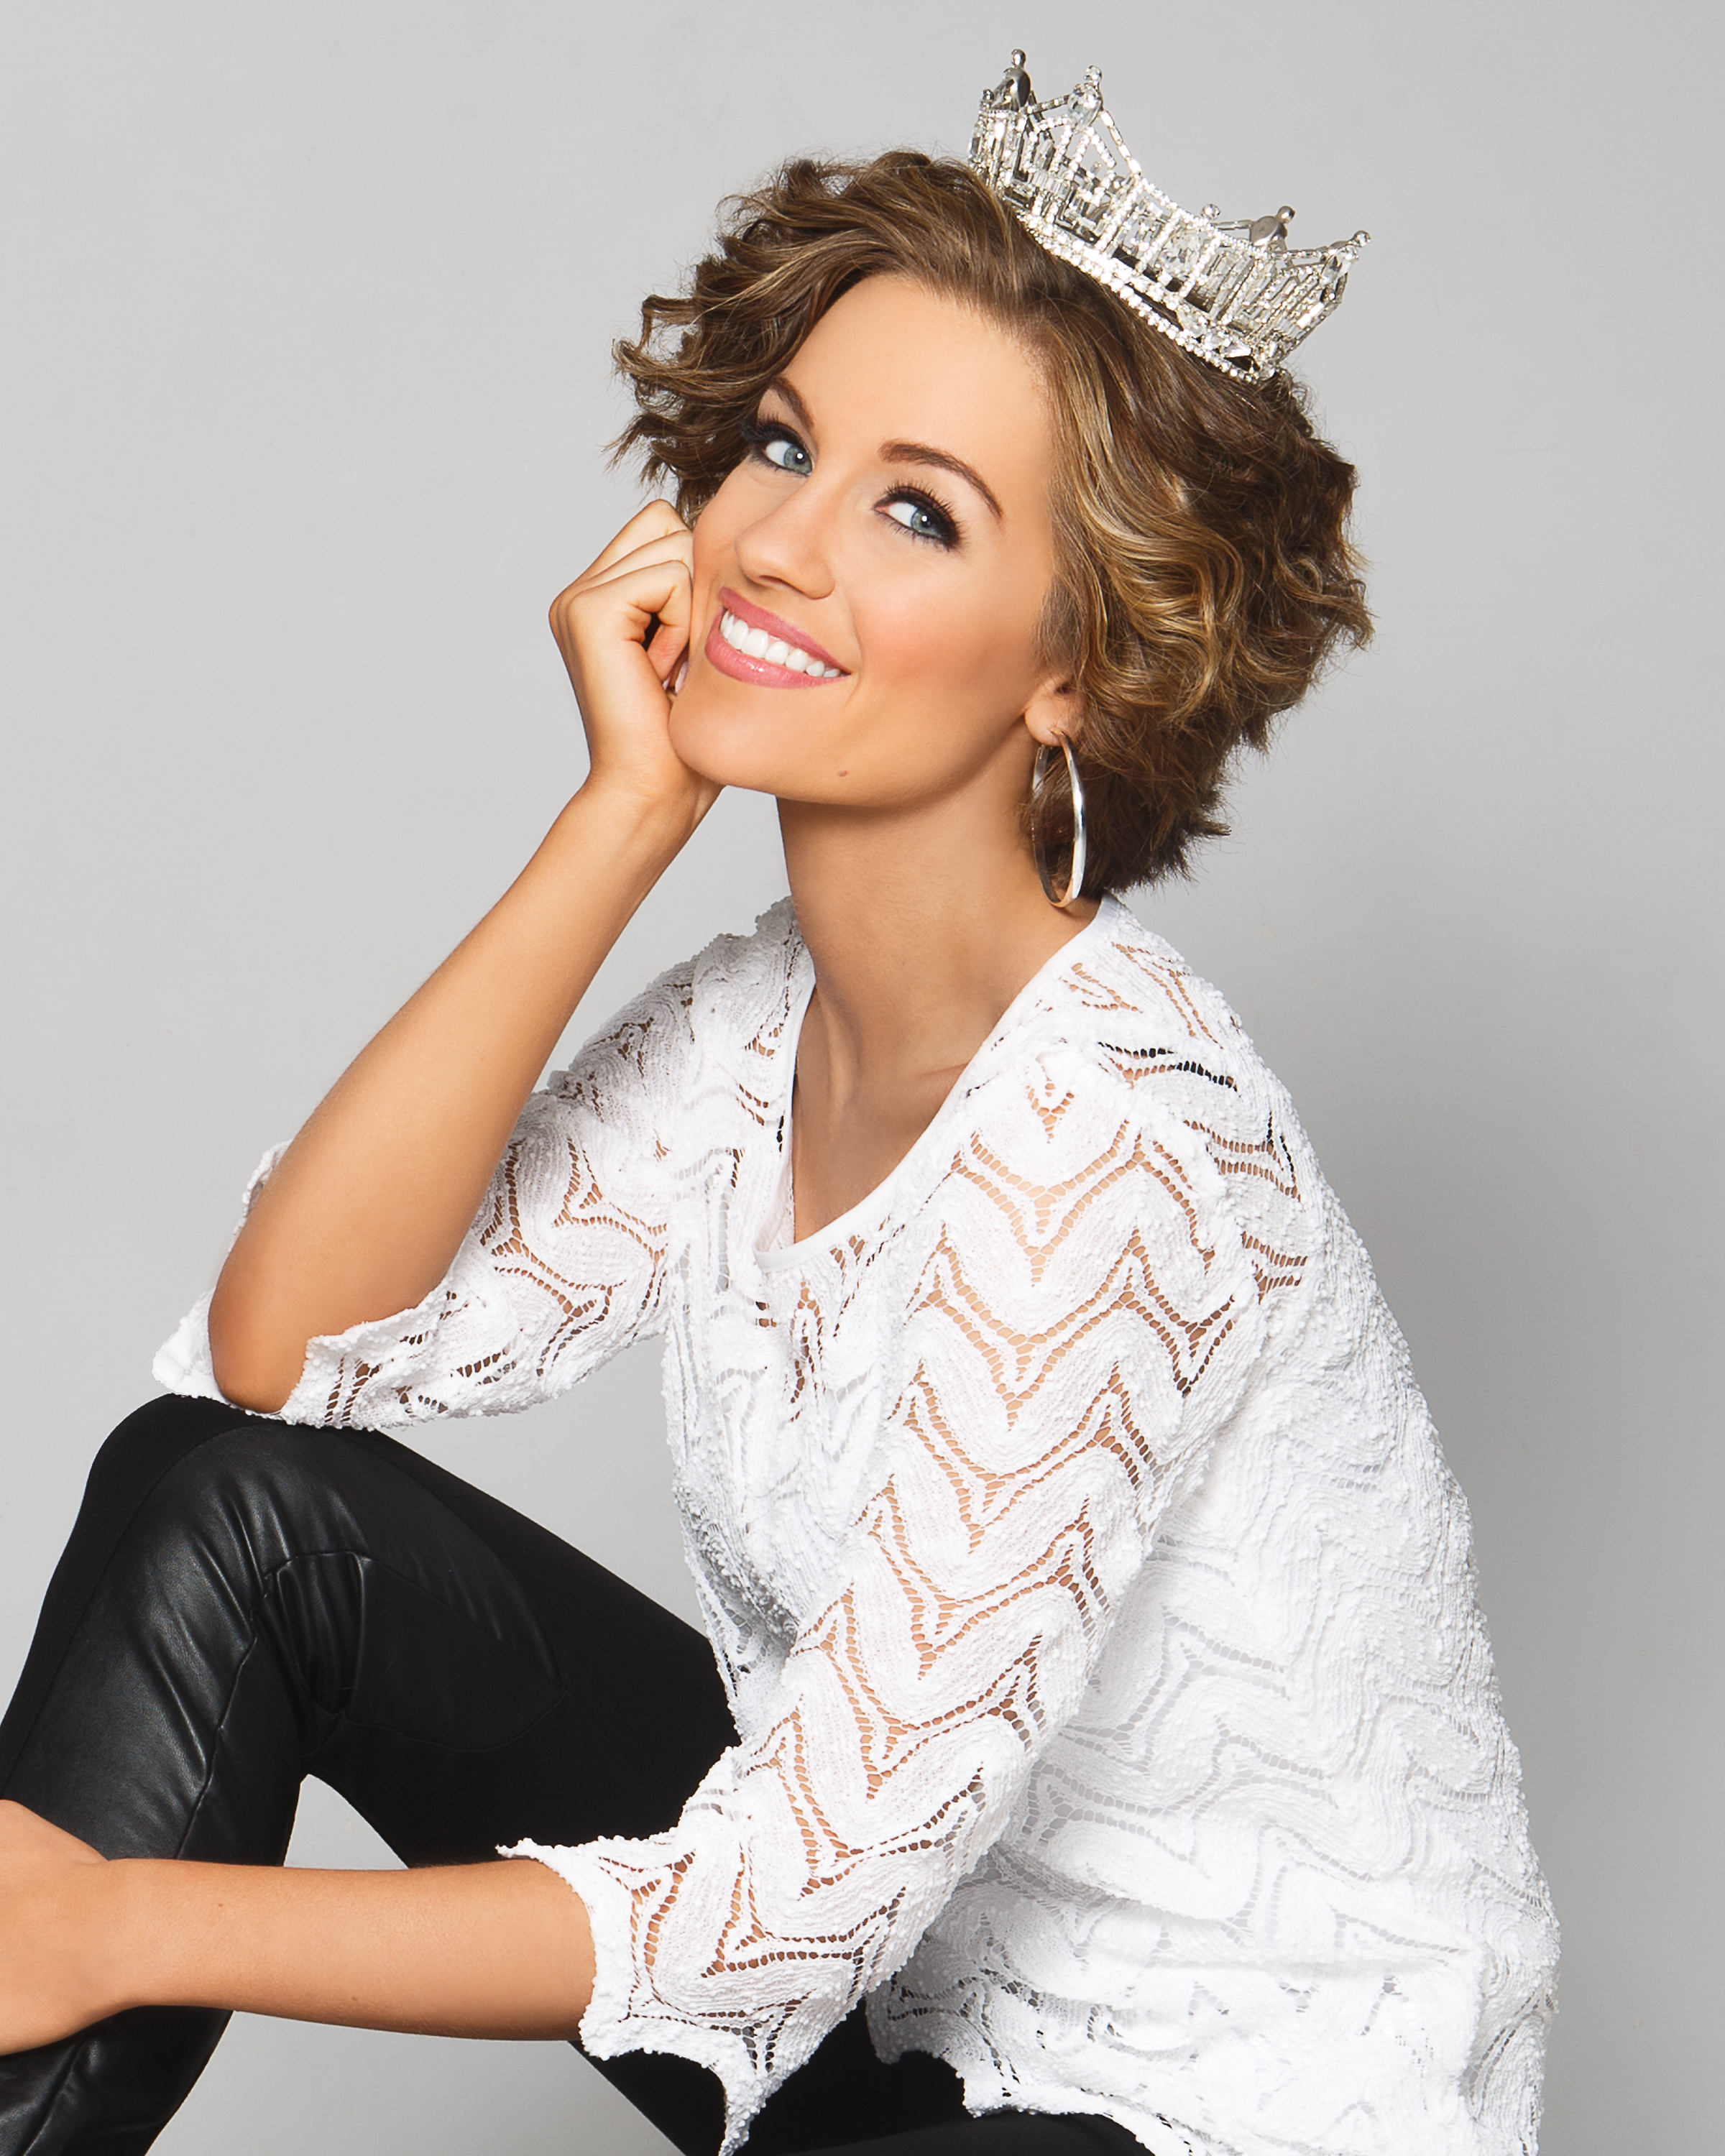 Miss America, Betty Cantrell. Hair and makeup by Meredith Boyd